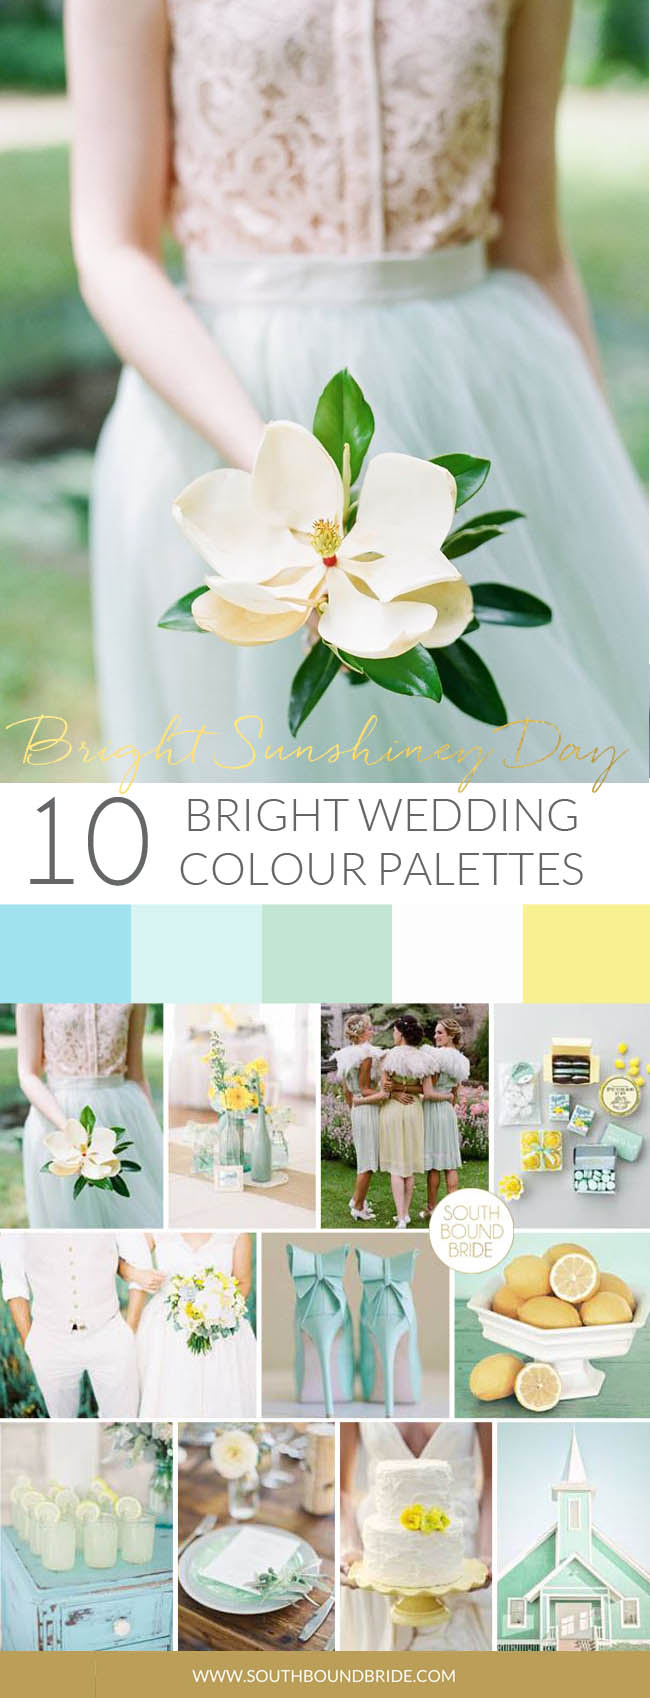 Bright Sunshiney Day Colorful Wedding Palette | SouthBound Bride